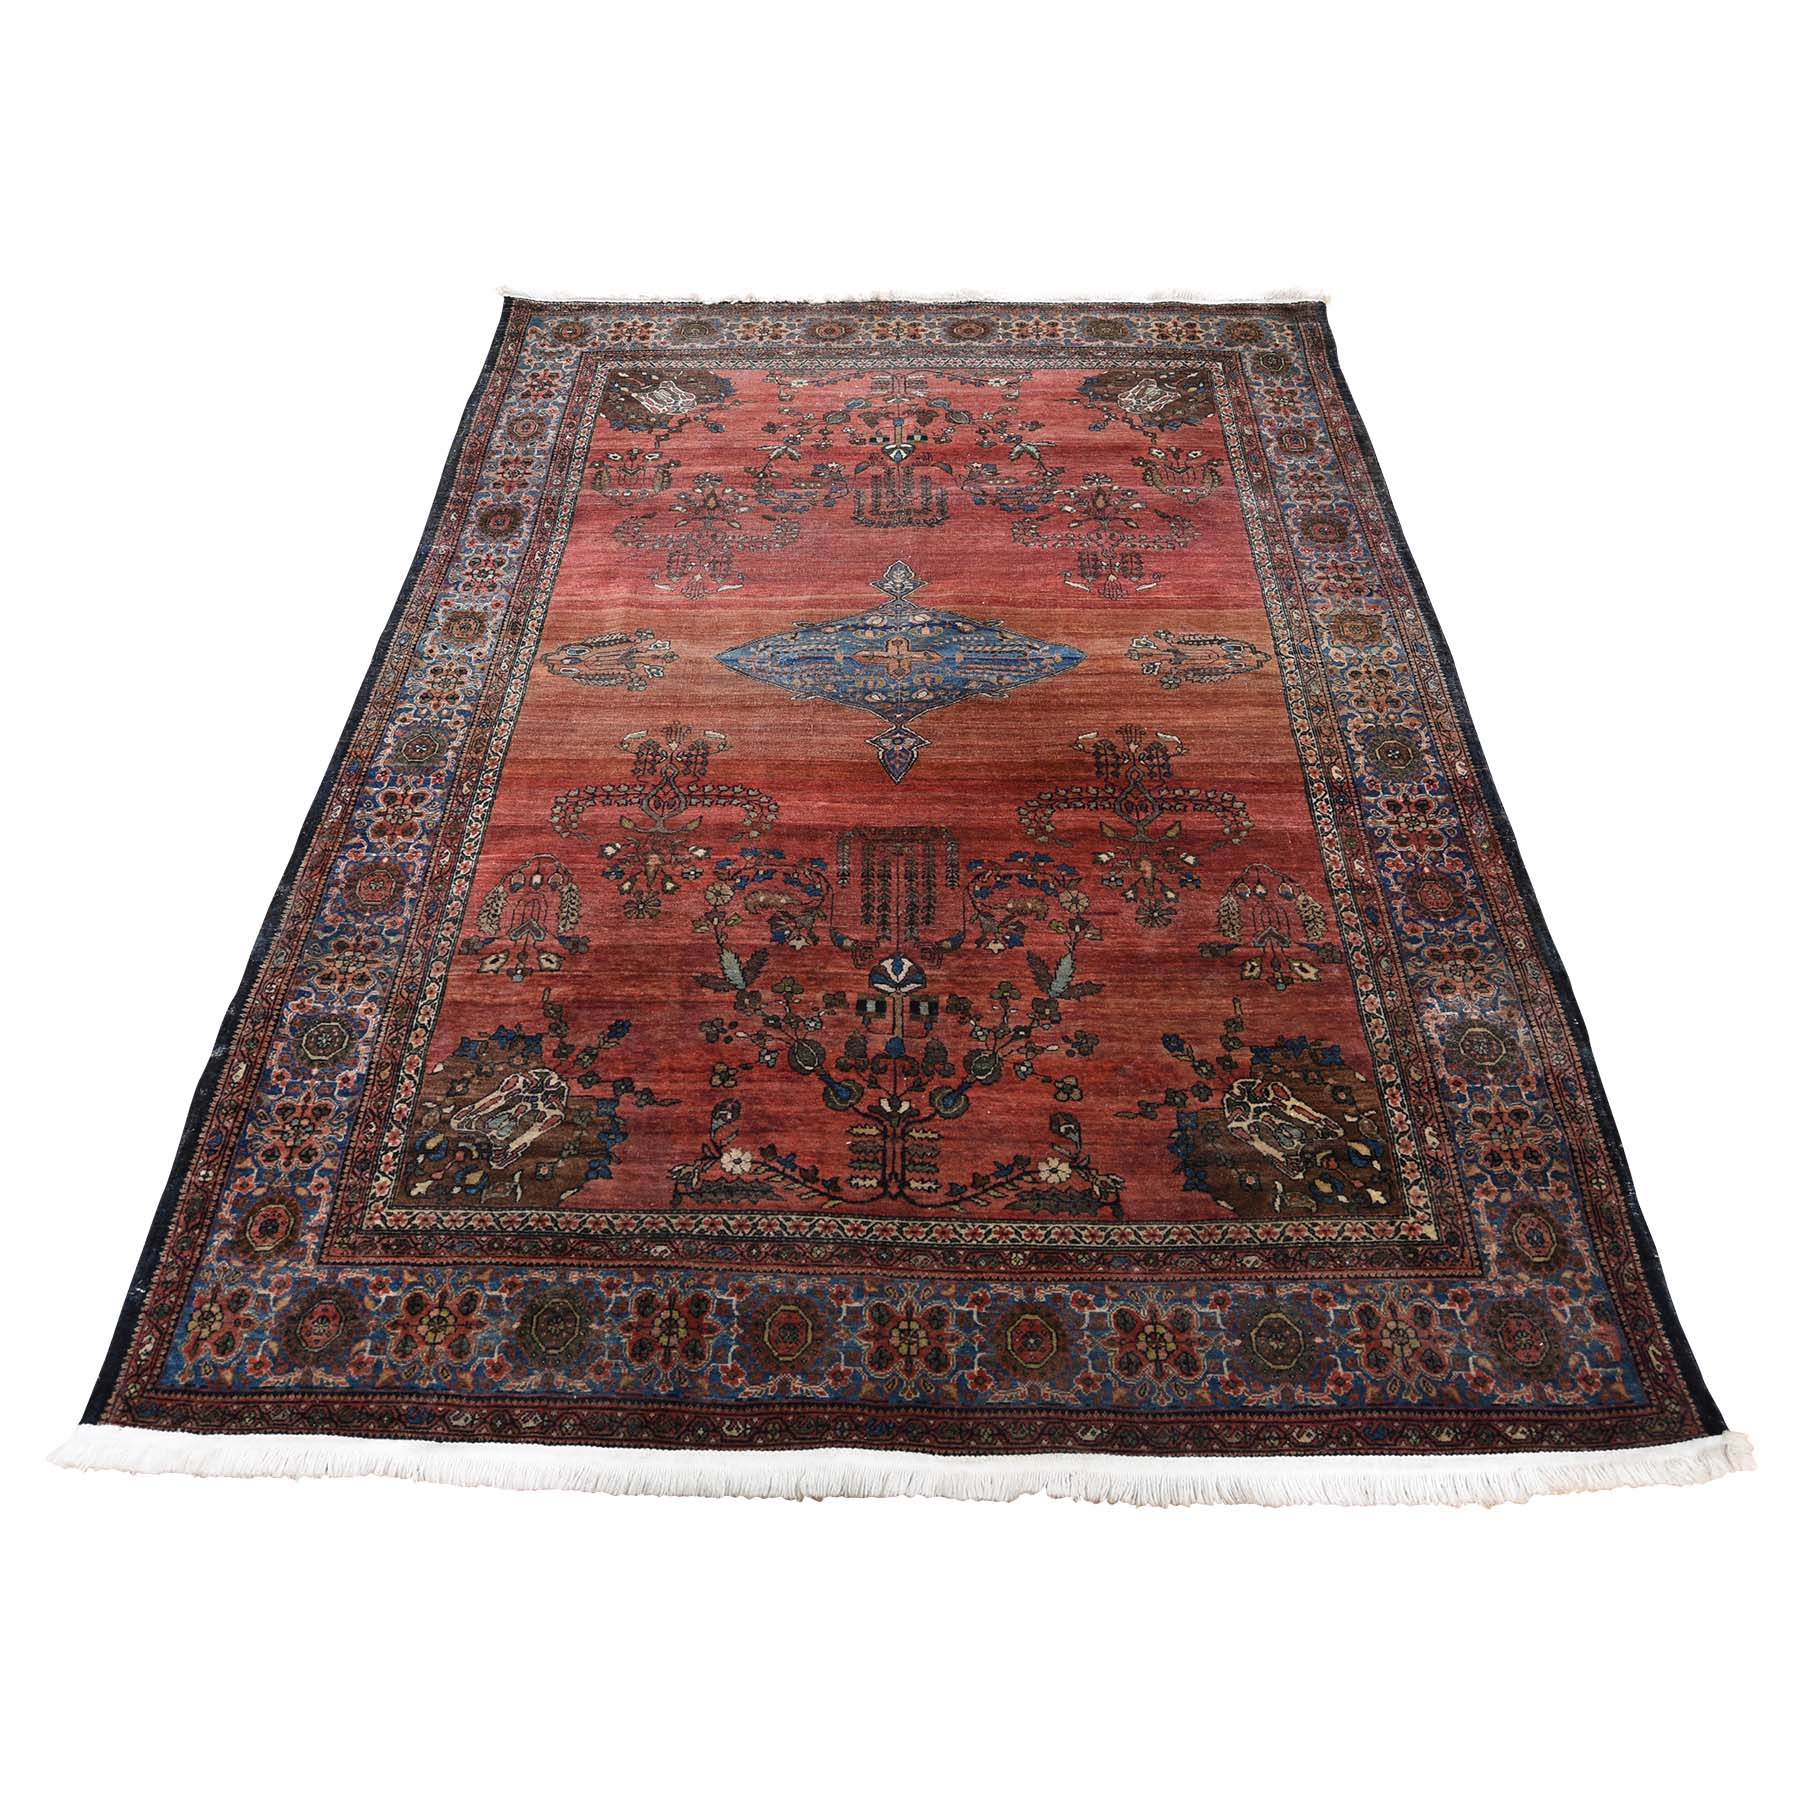 "4'2""X6'4"" Antique Persian Sarouk Fereghan Worn But Soft Hand-Knotted Oriental Rug moadd9d0"